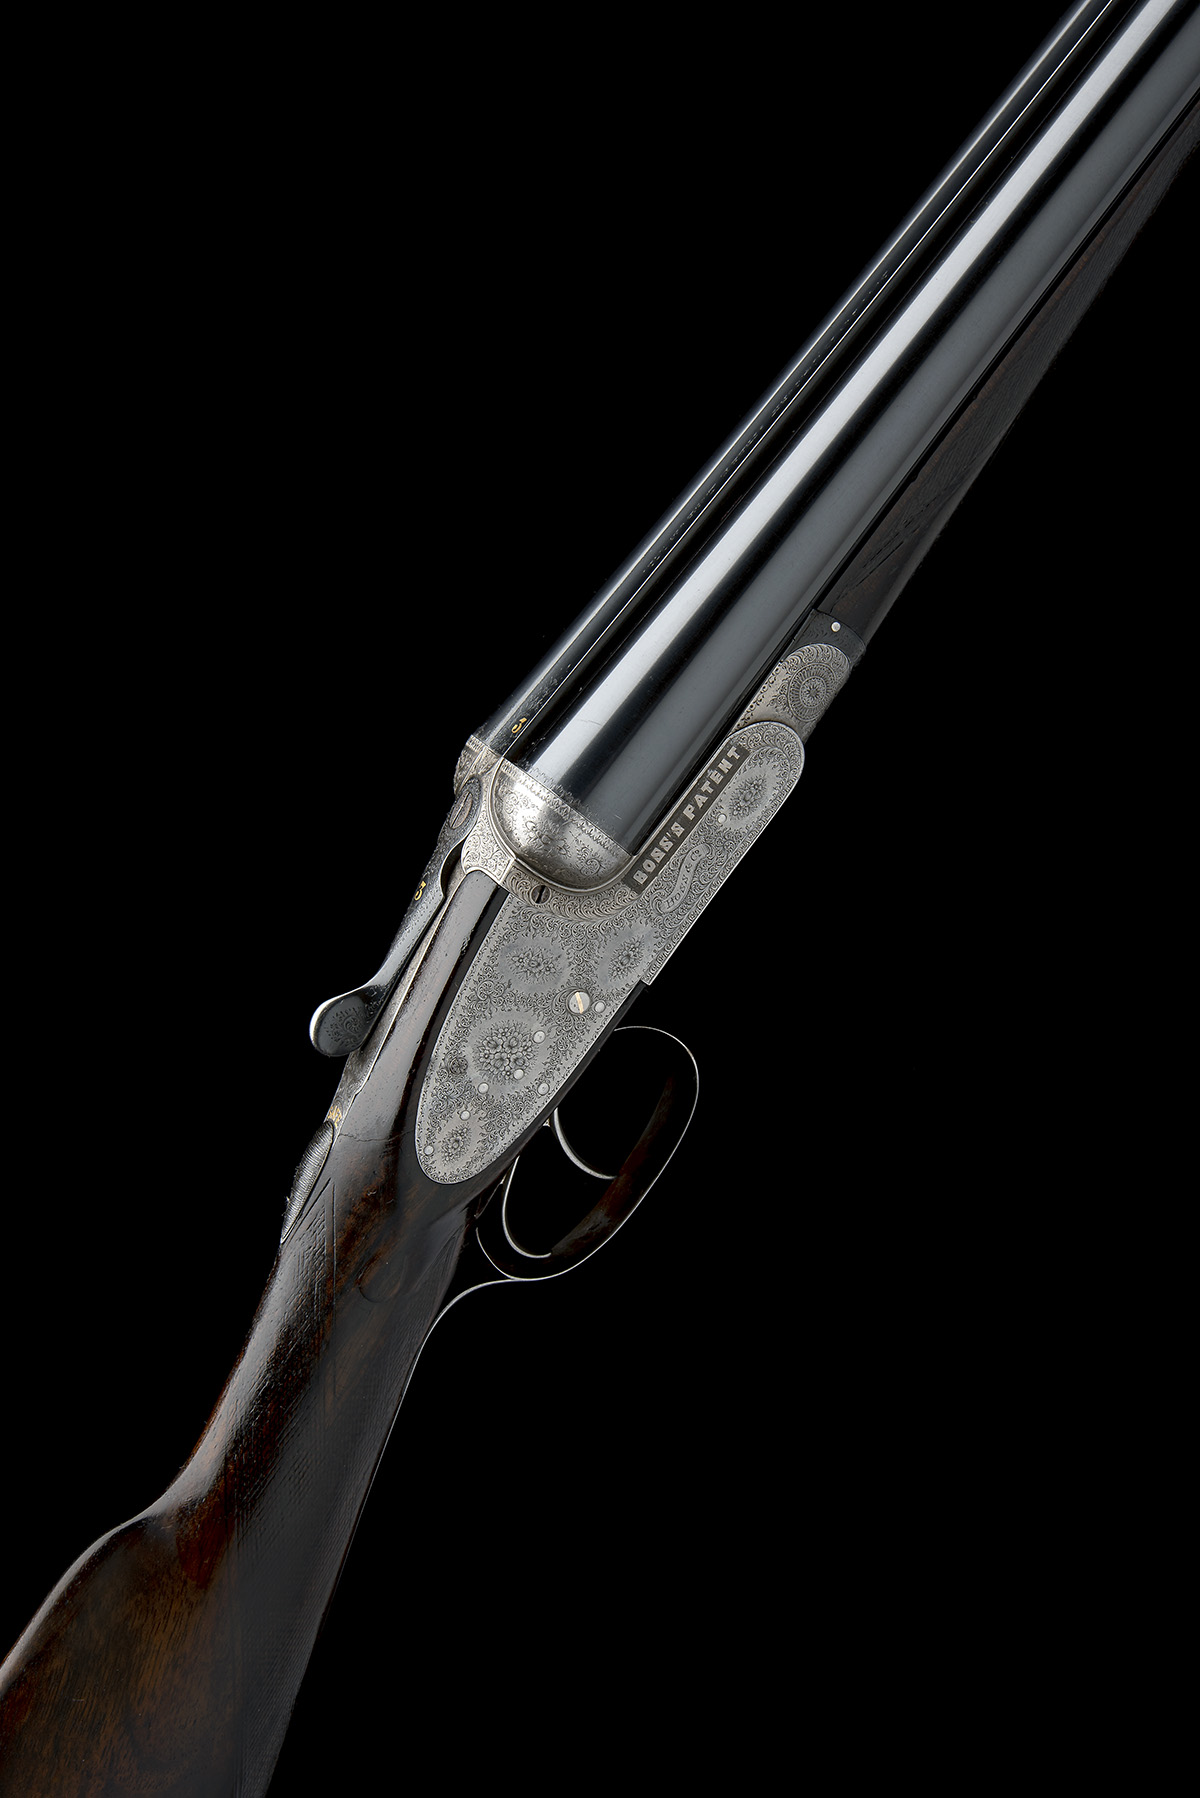 BOSS & CO. A 12-BORE EASY-OPENING SIDELOCK EJECTOR, serial no. 4854, for 1901, 28in. nitro